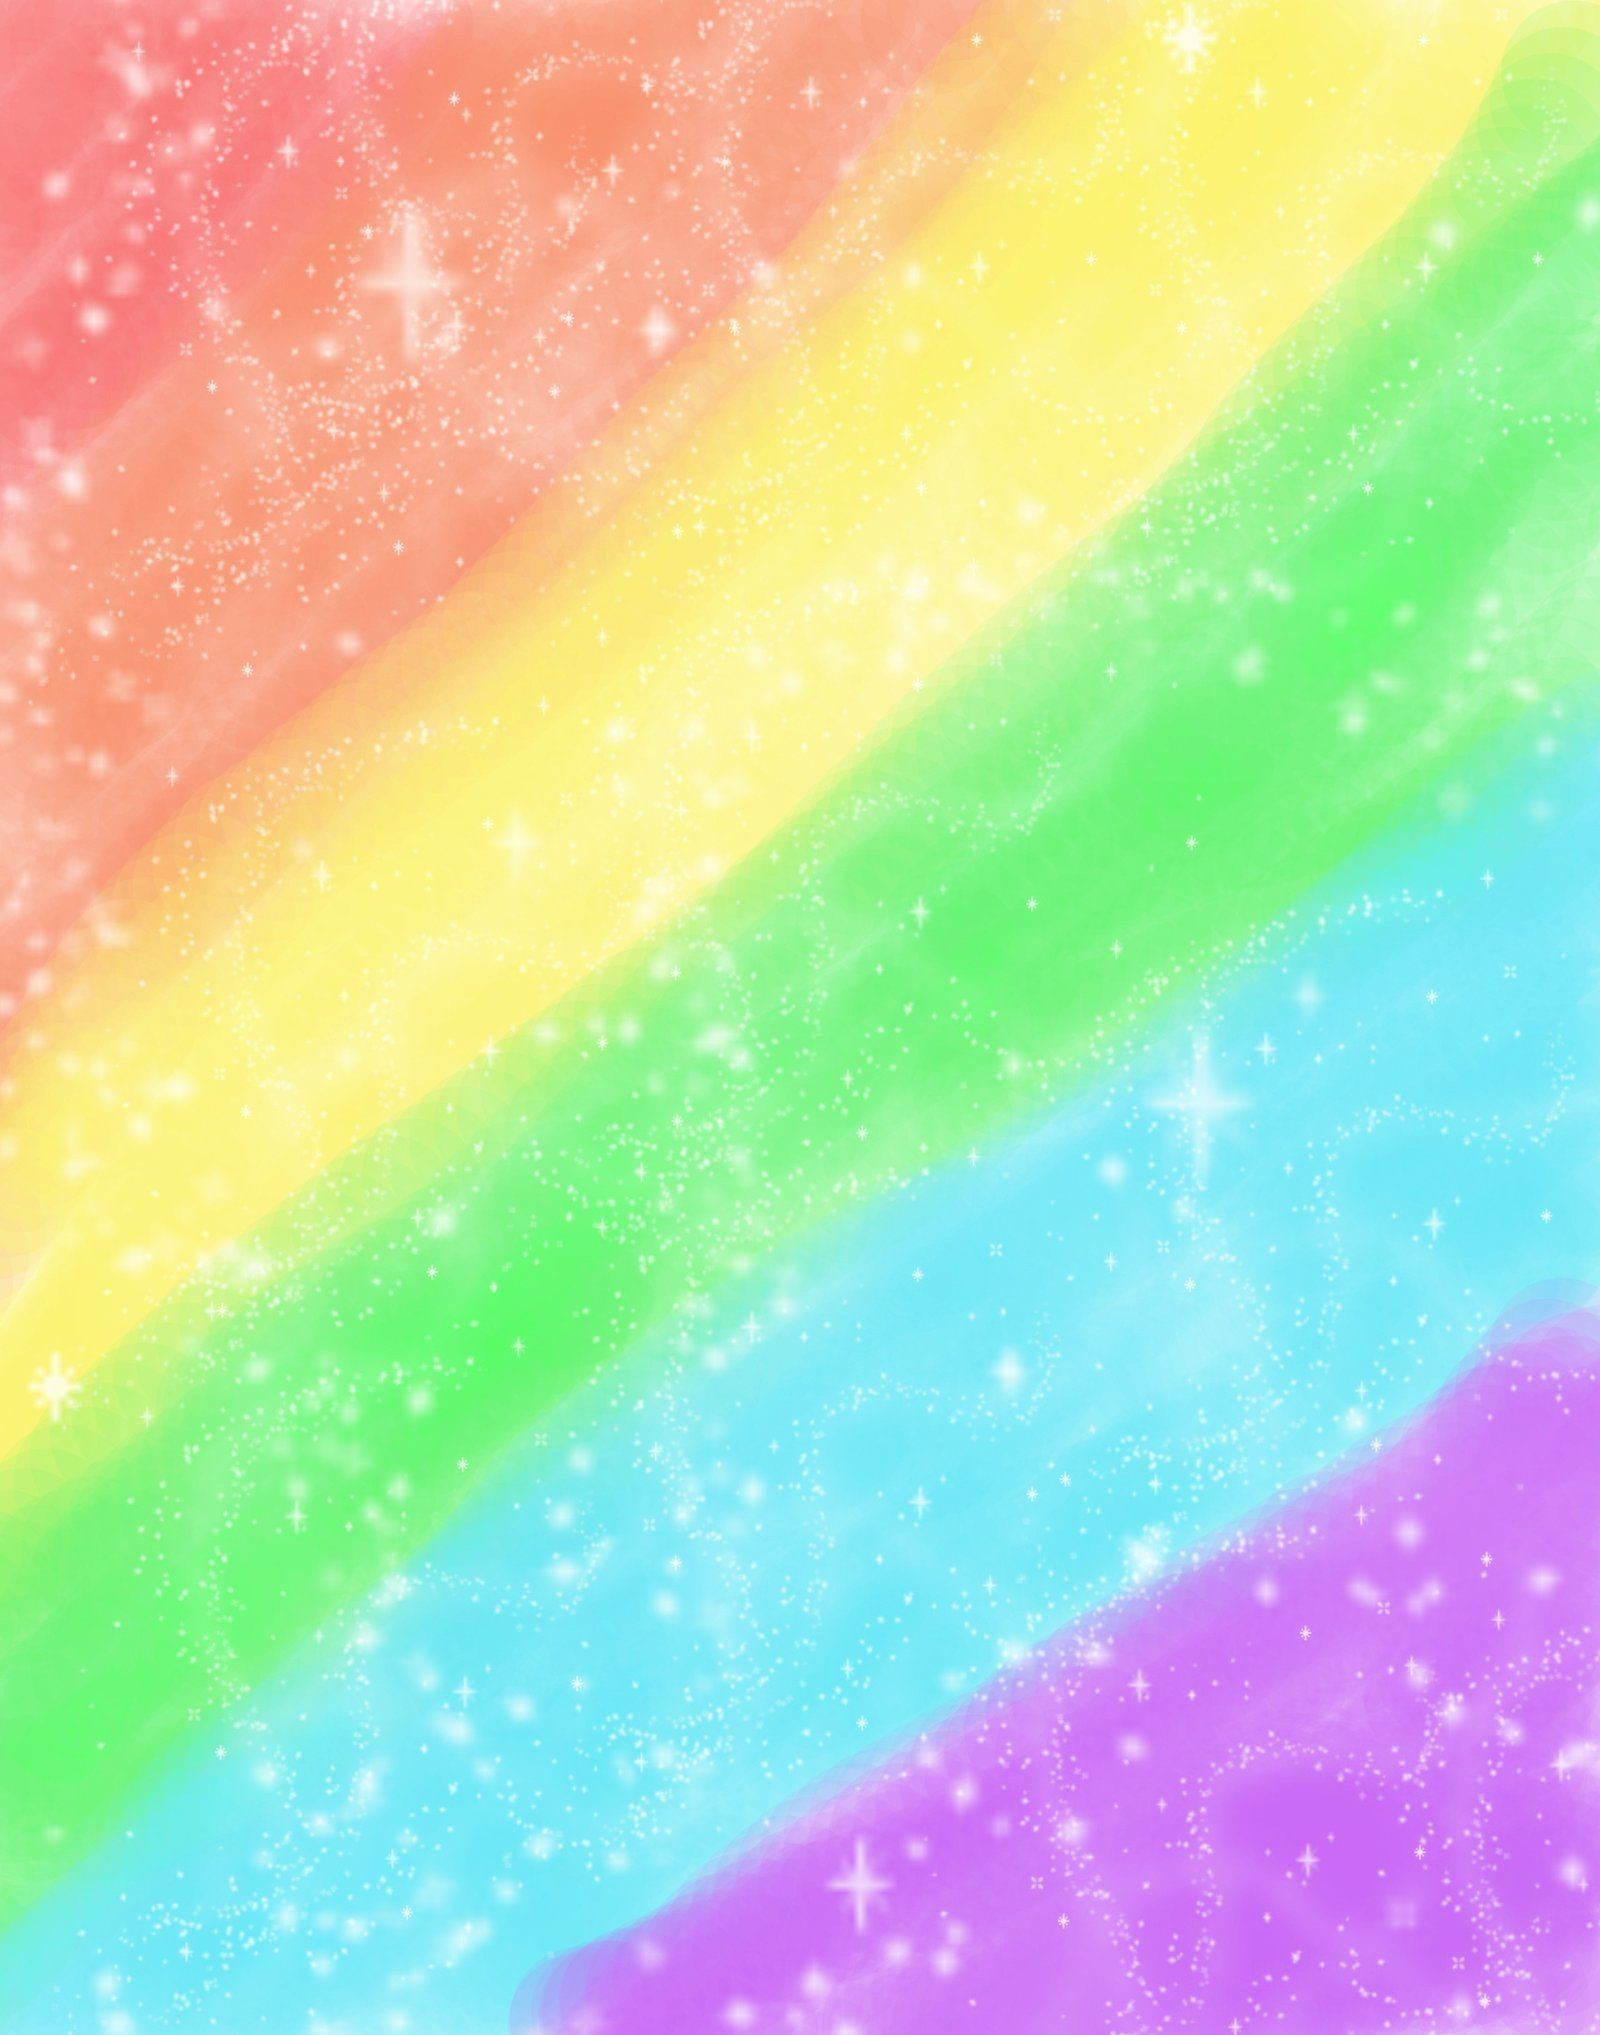 Rainbow background Tumblr ·① Download free stunning full HD wallpapers for desktop and mobile